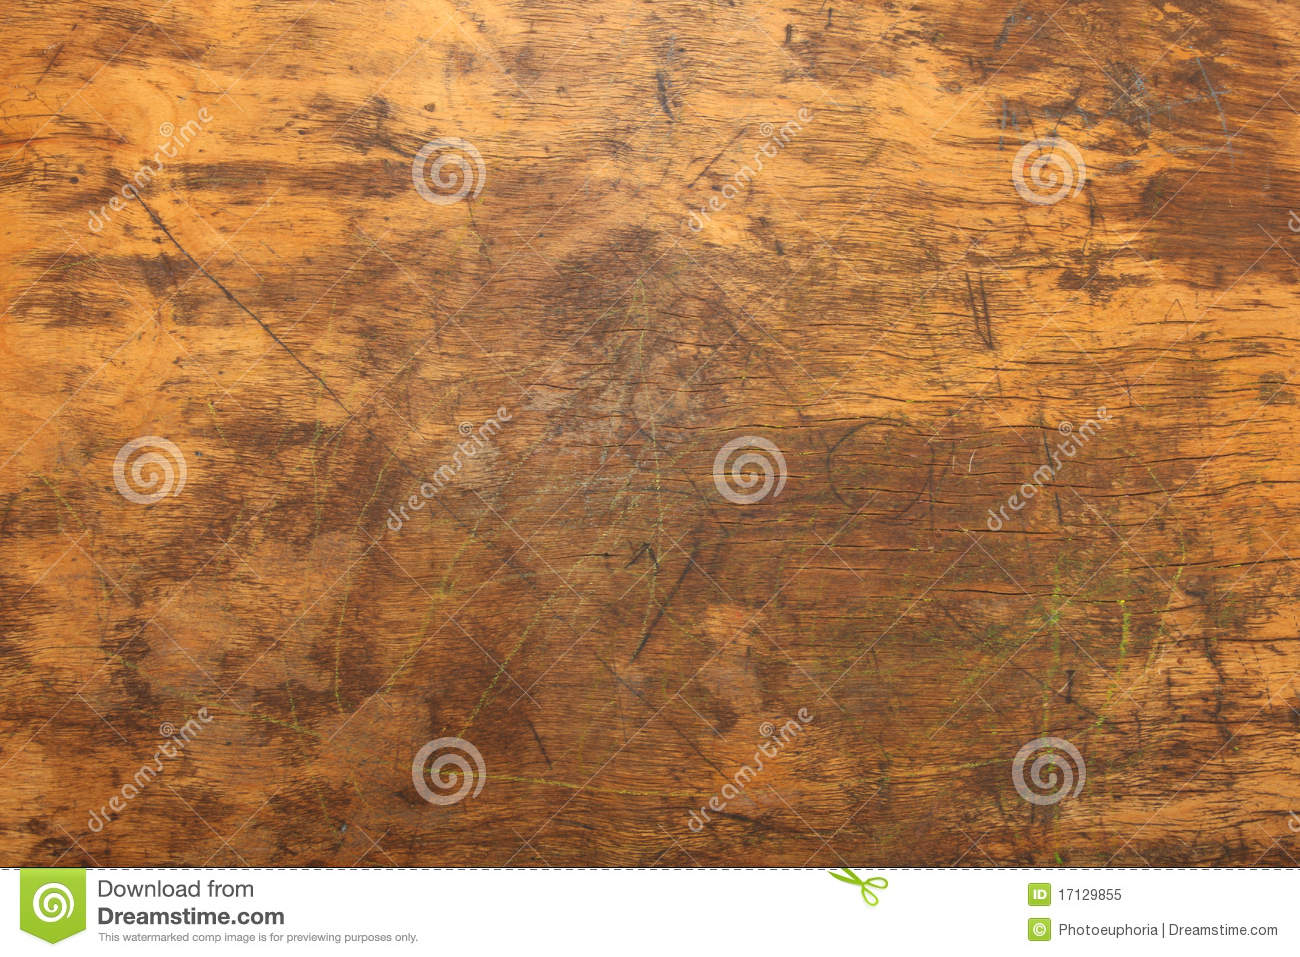 Wooden Desk Texture Close Up Stock Image - Image of carved ...